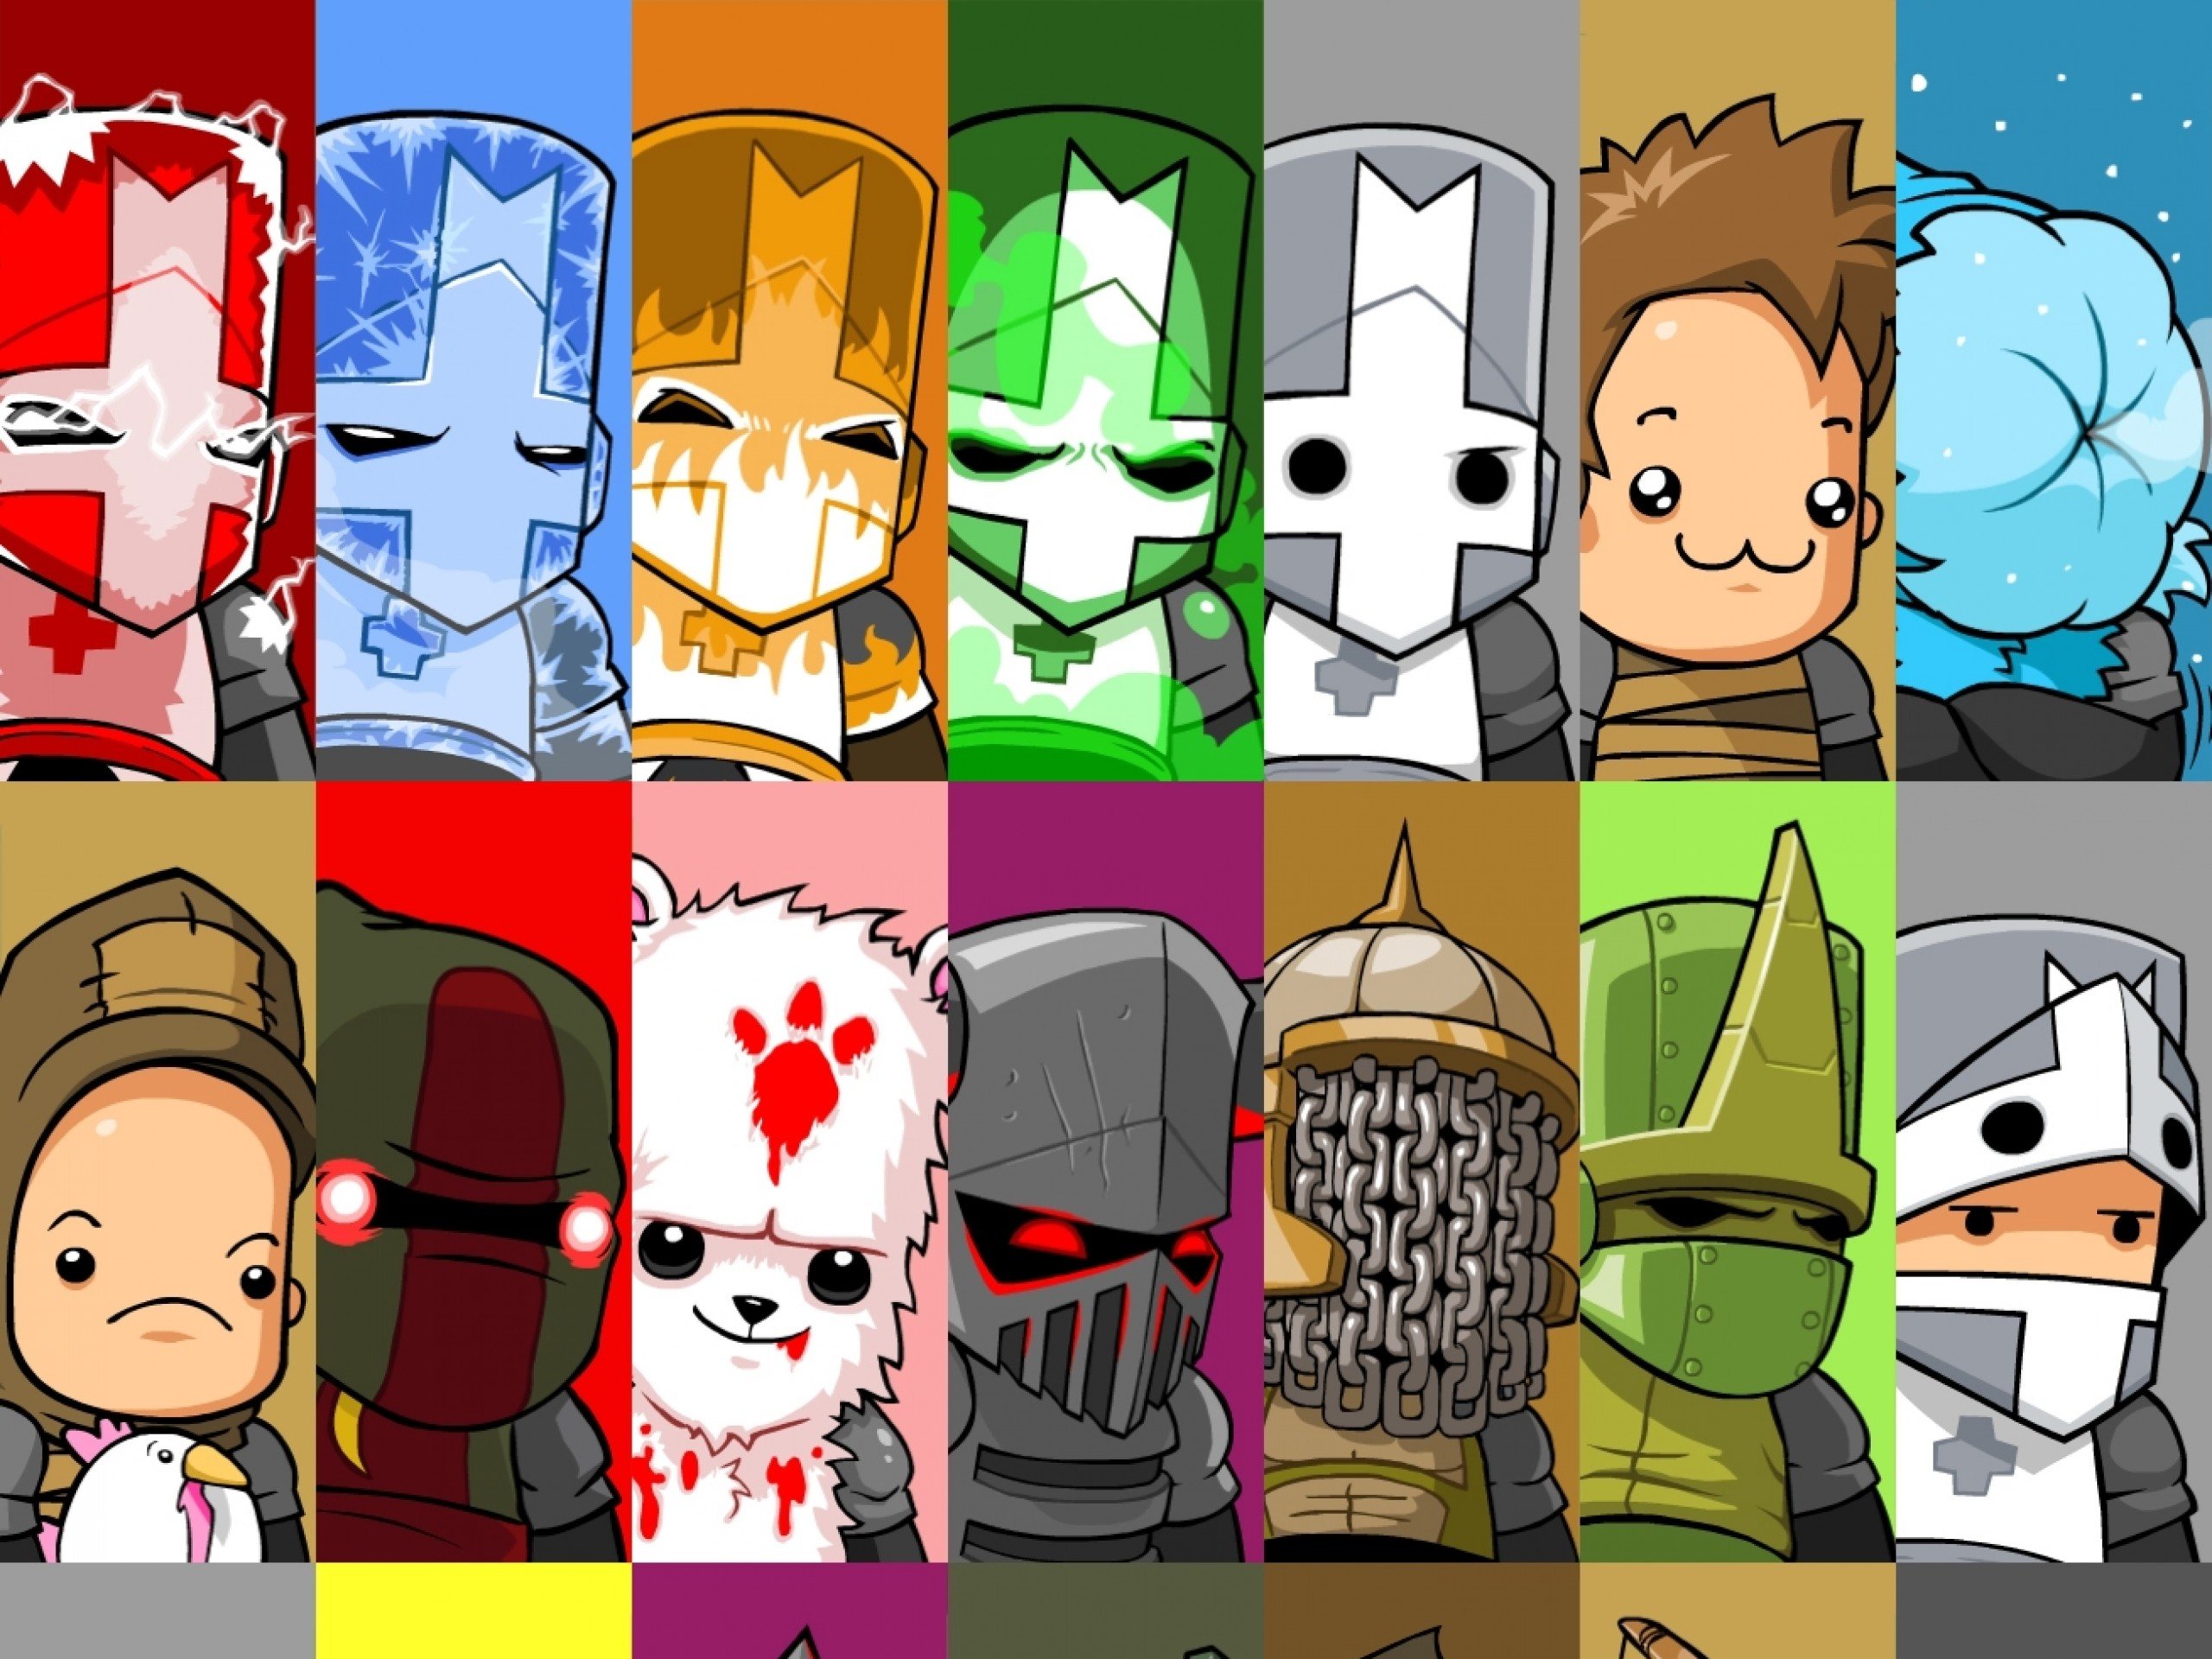 … castle crashers wallpapers gallery image mrfab …